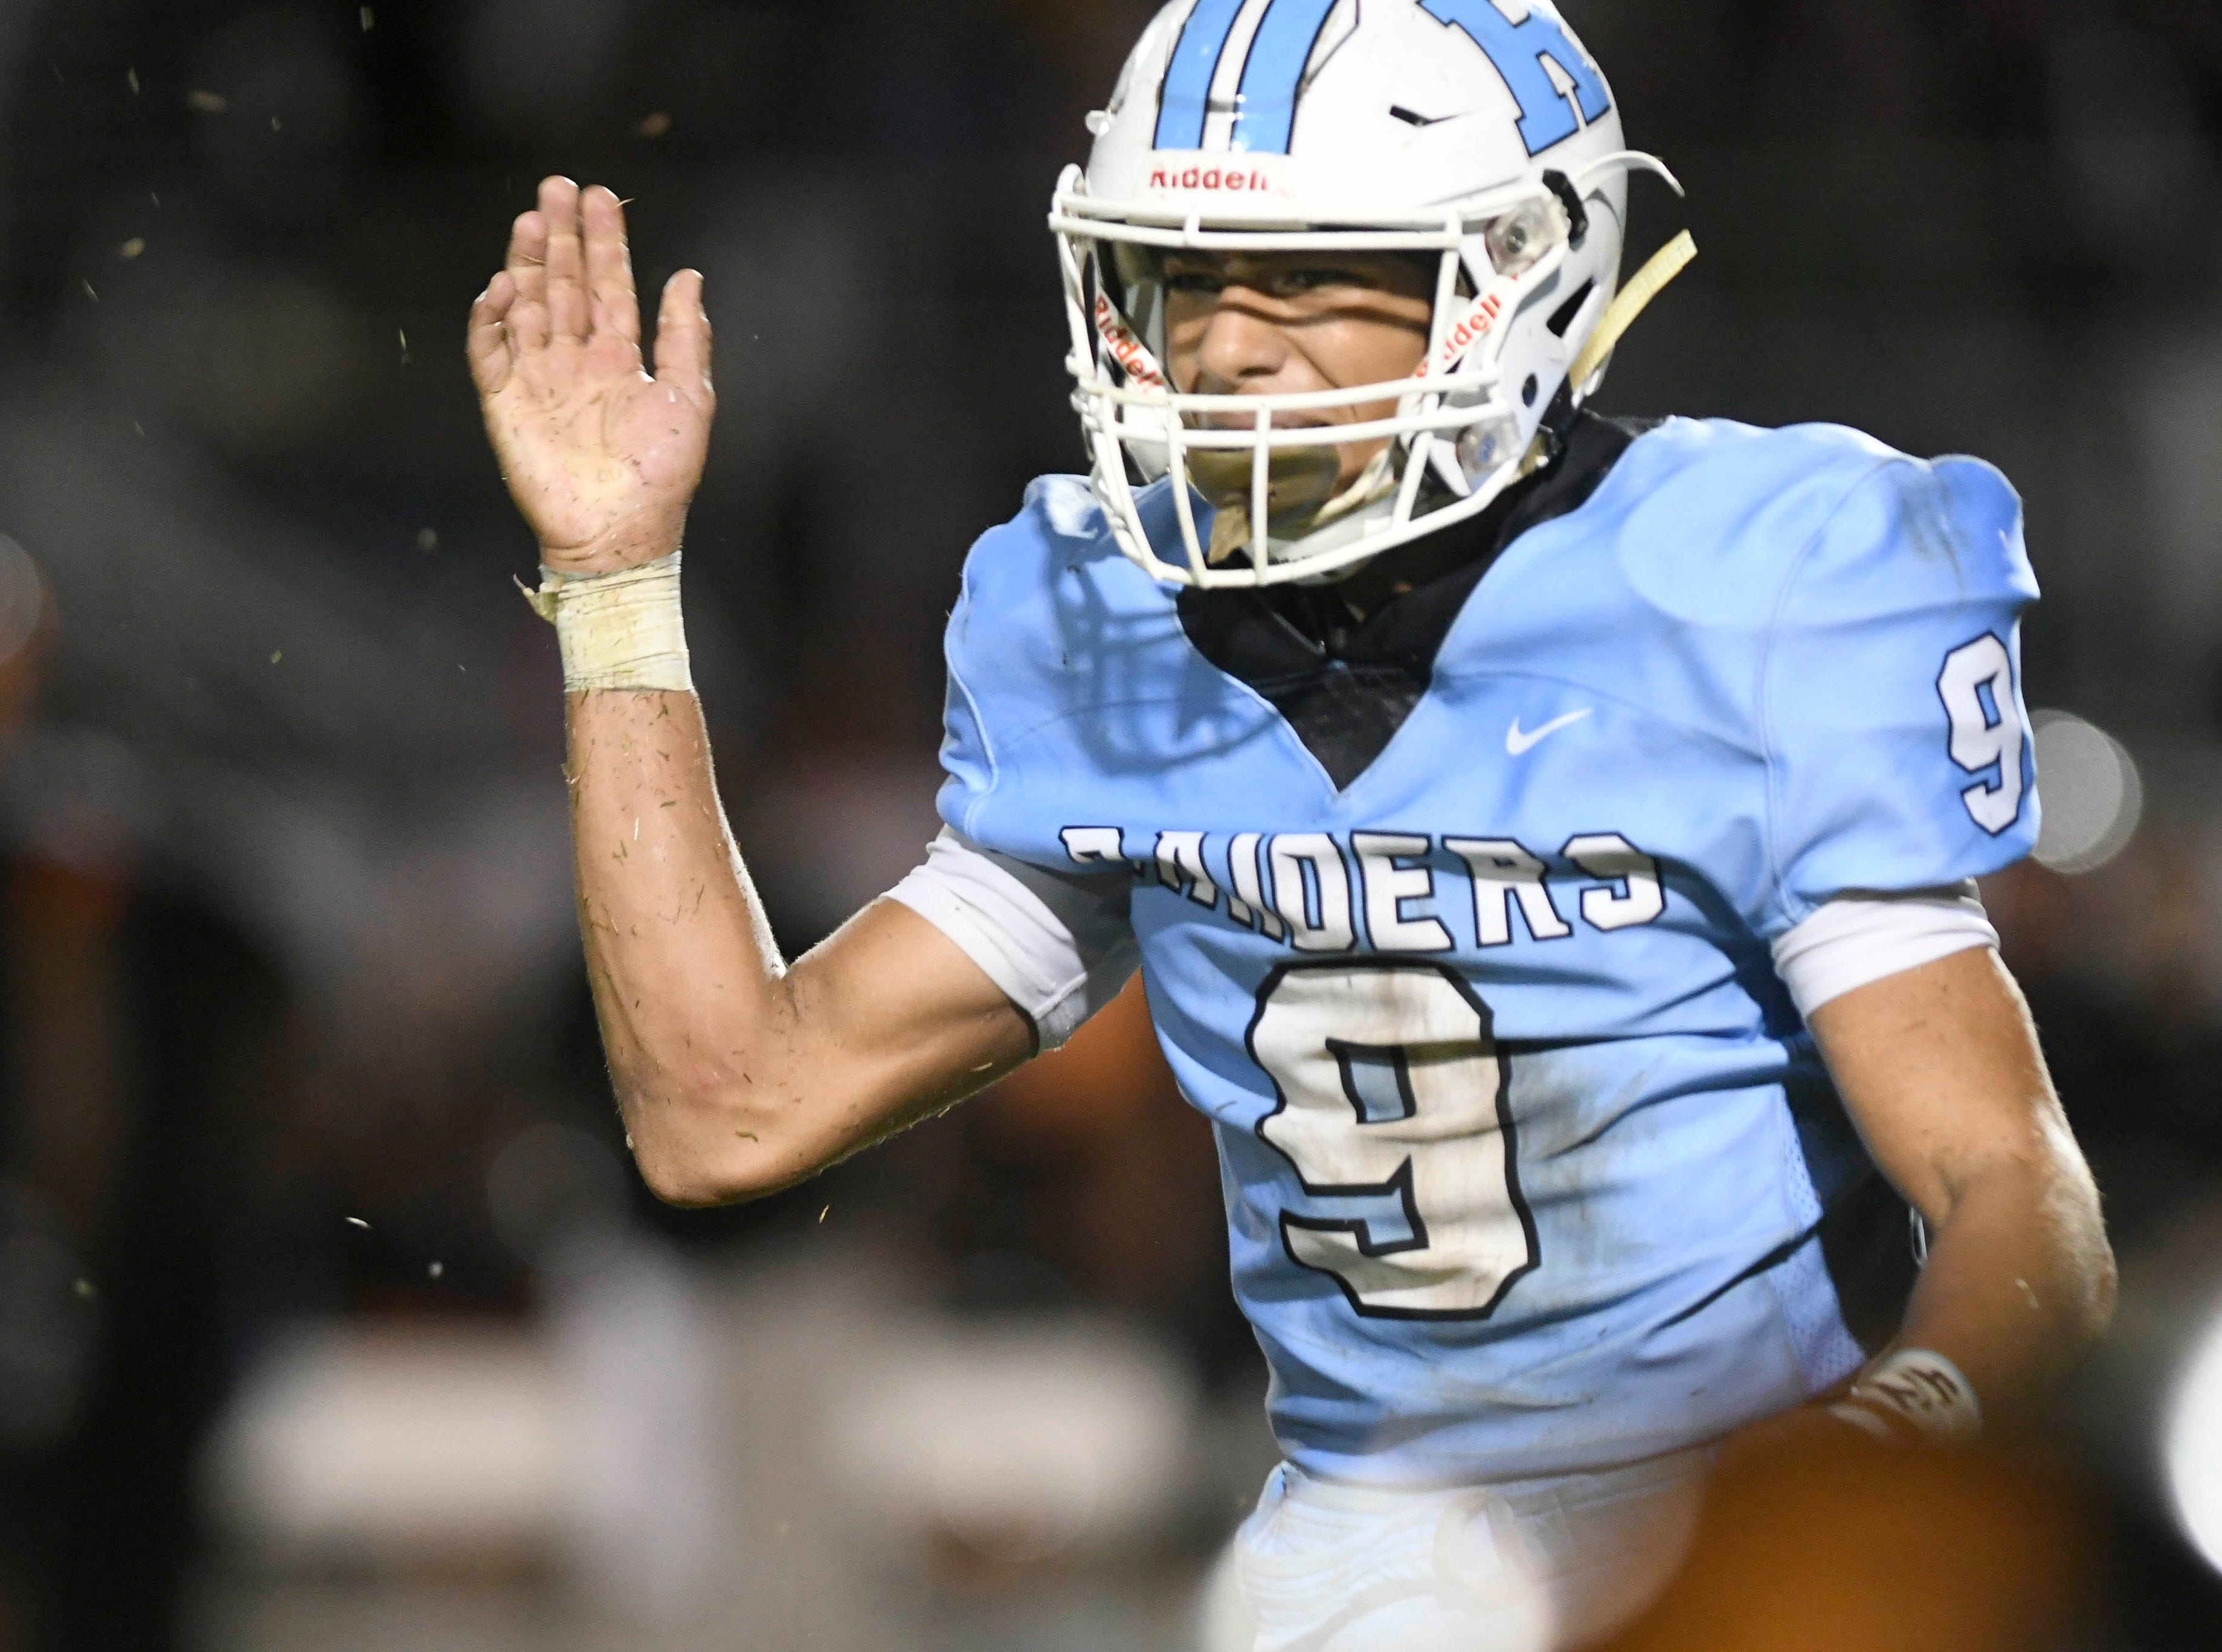 OC Brothers of Rockledge celebrates a defensive stop during Friday's game.